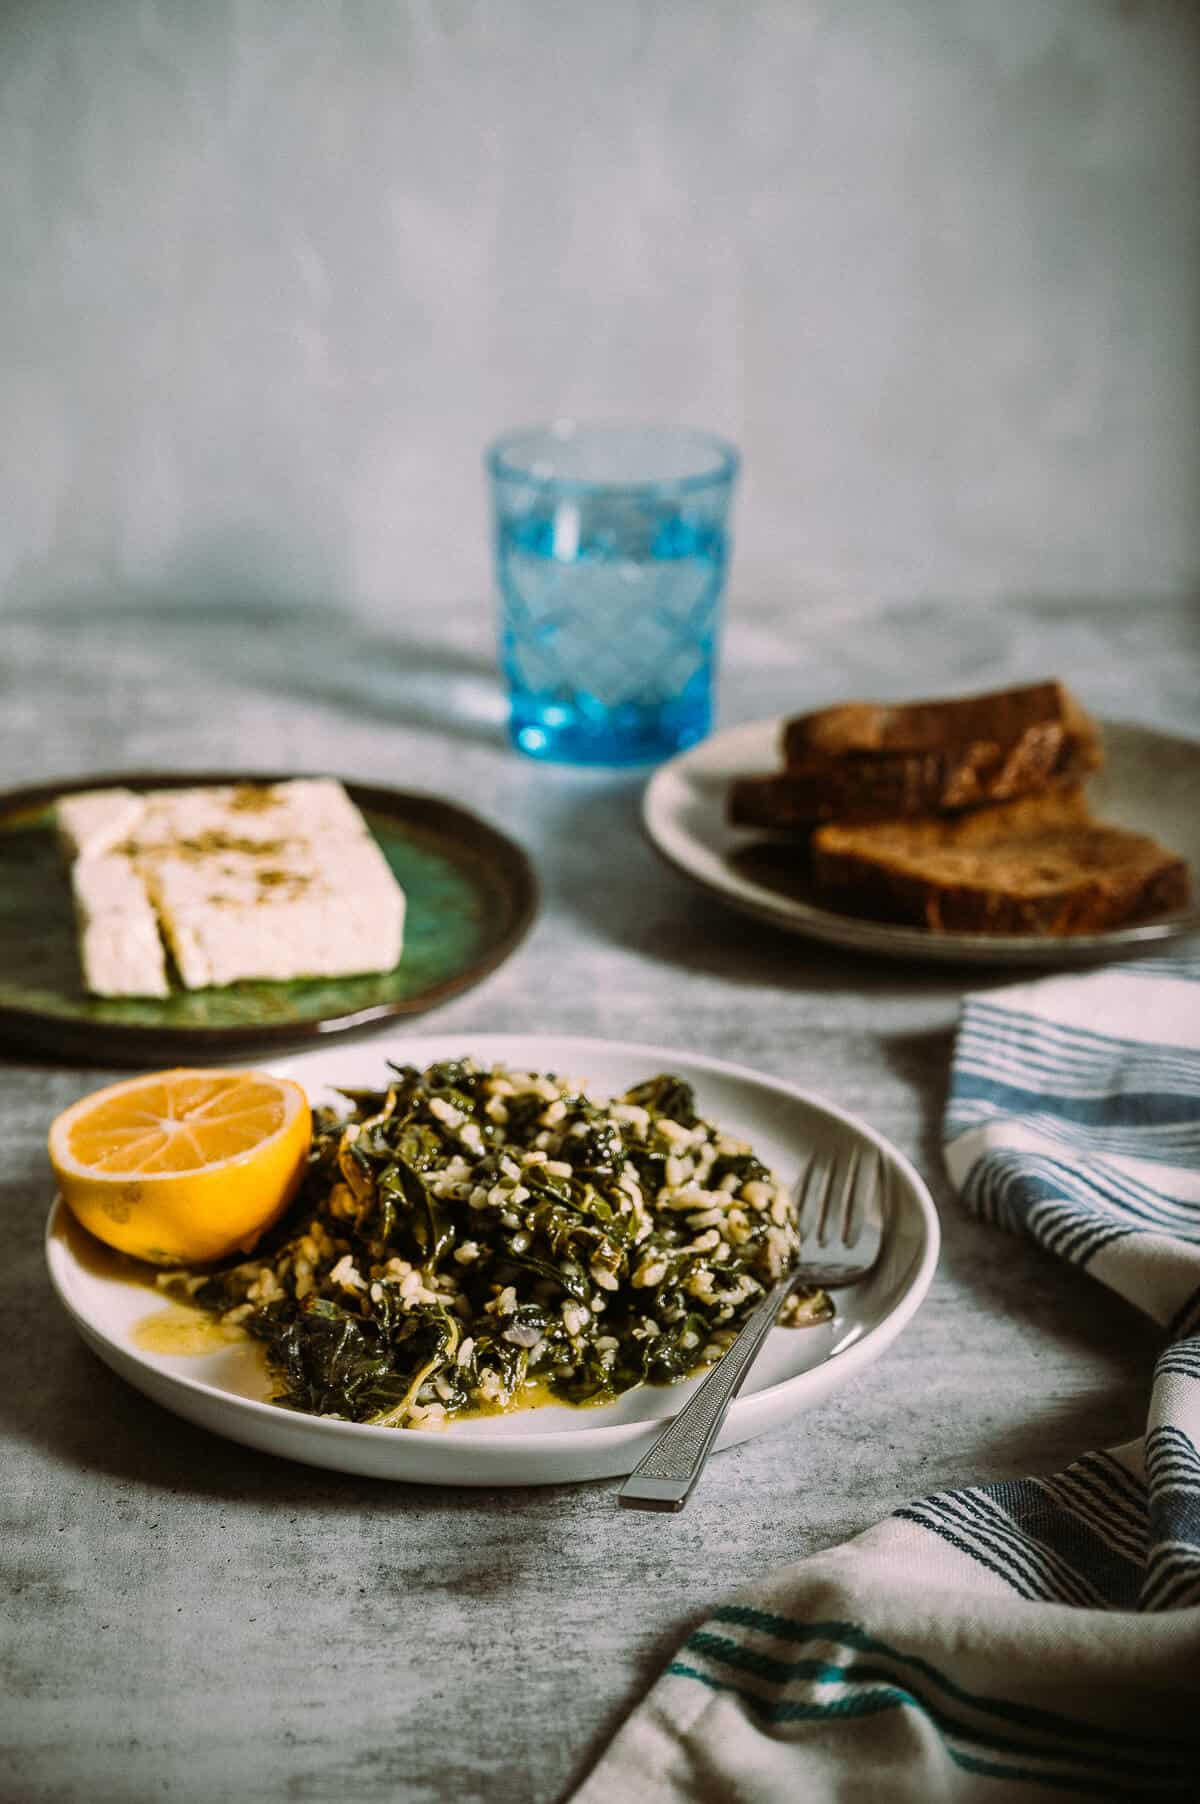 a plate filled with cooked spinach and rice served with feta cheese and bread on a grey table